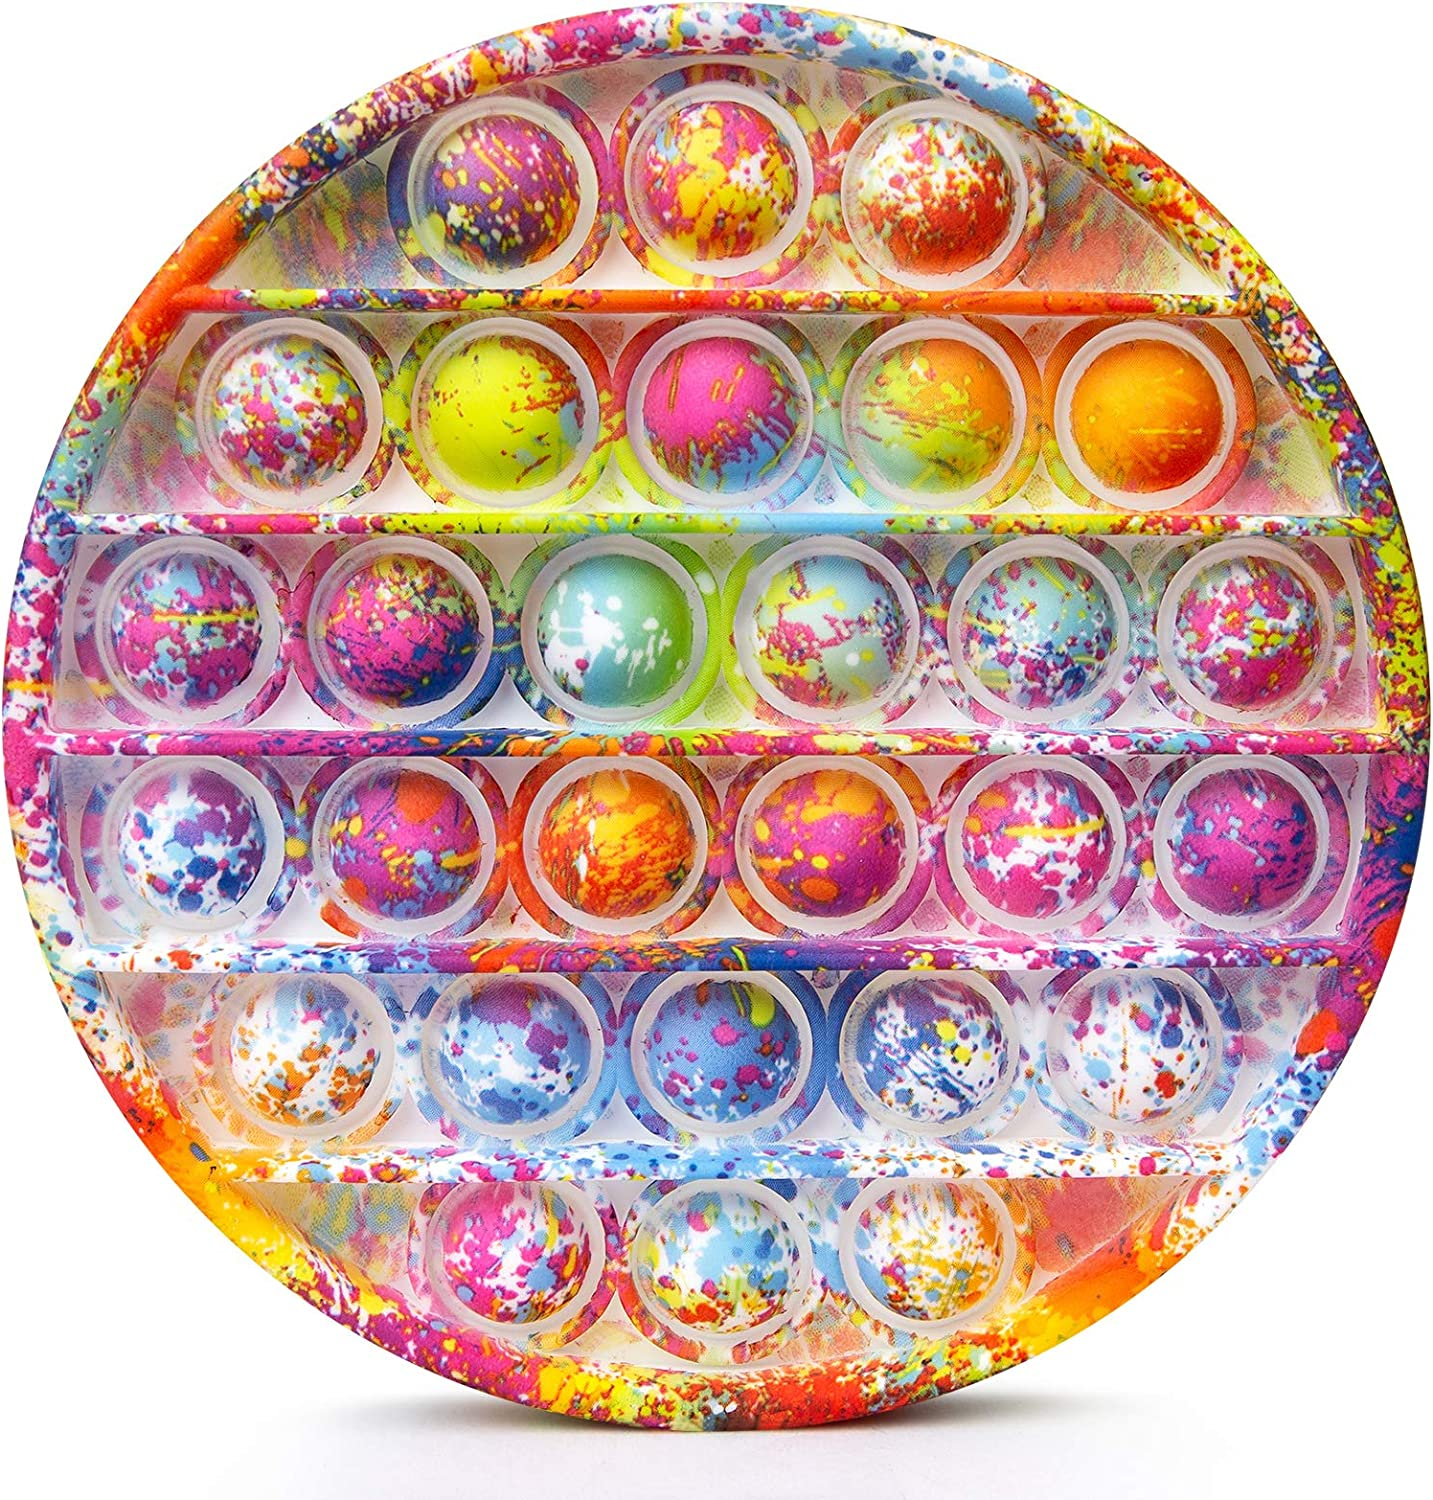 Oil Painting Bubble Sensory Fidget Toys for Autism Special Needs Stress Anxiety Relief Round Kakeedoo Push Pop It Fidget Toy